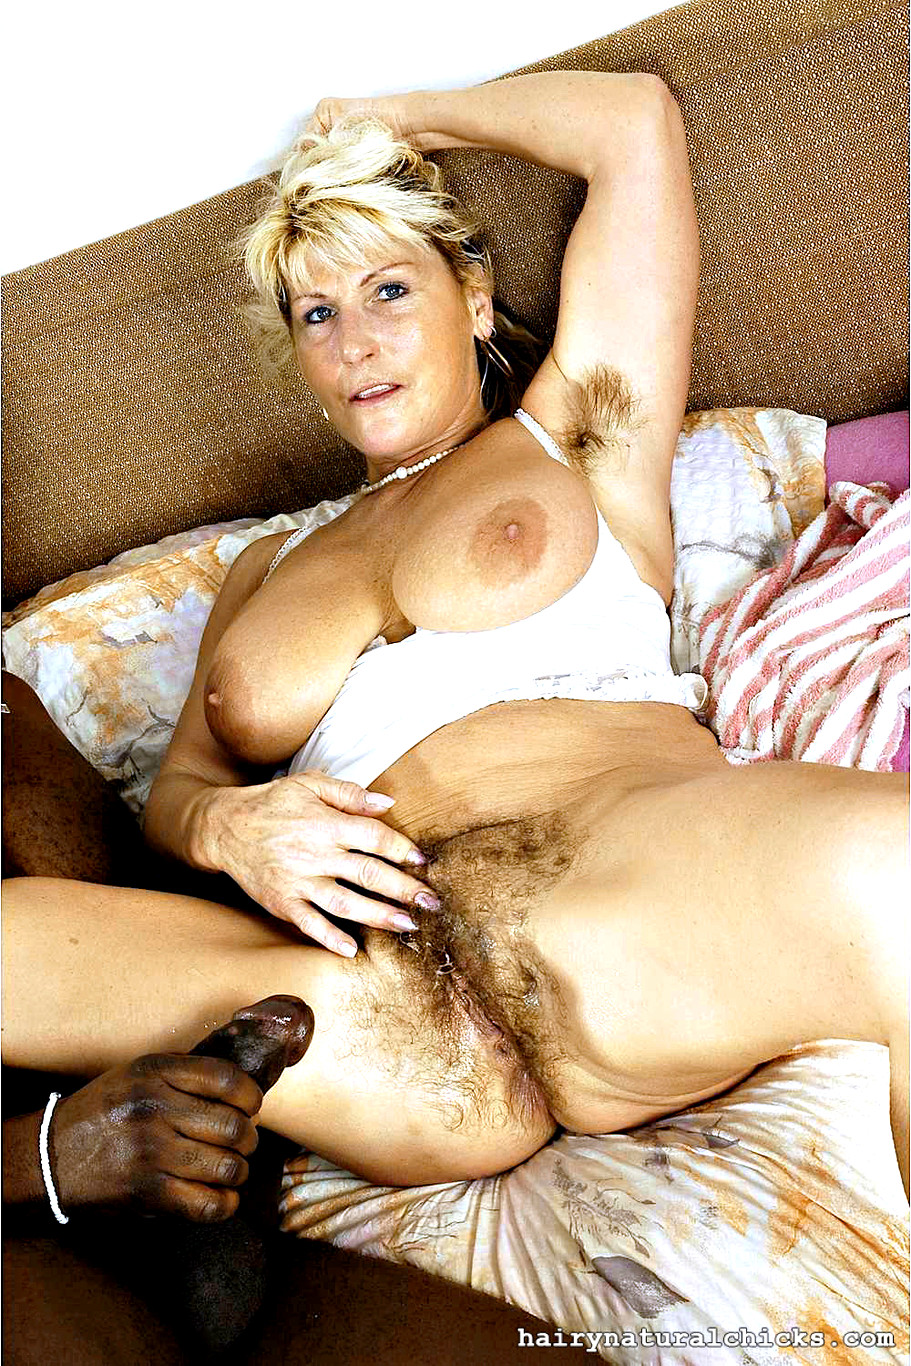 Chicks with hairy pussy